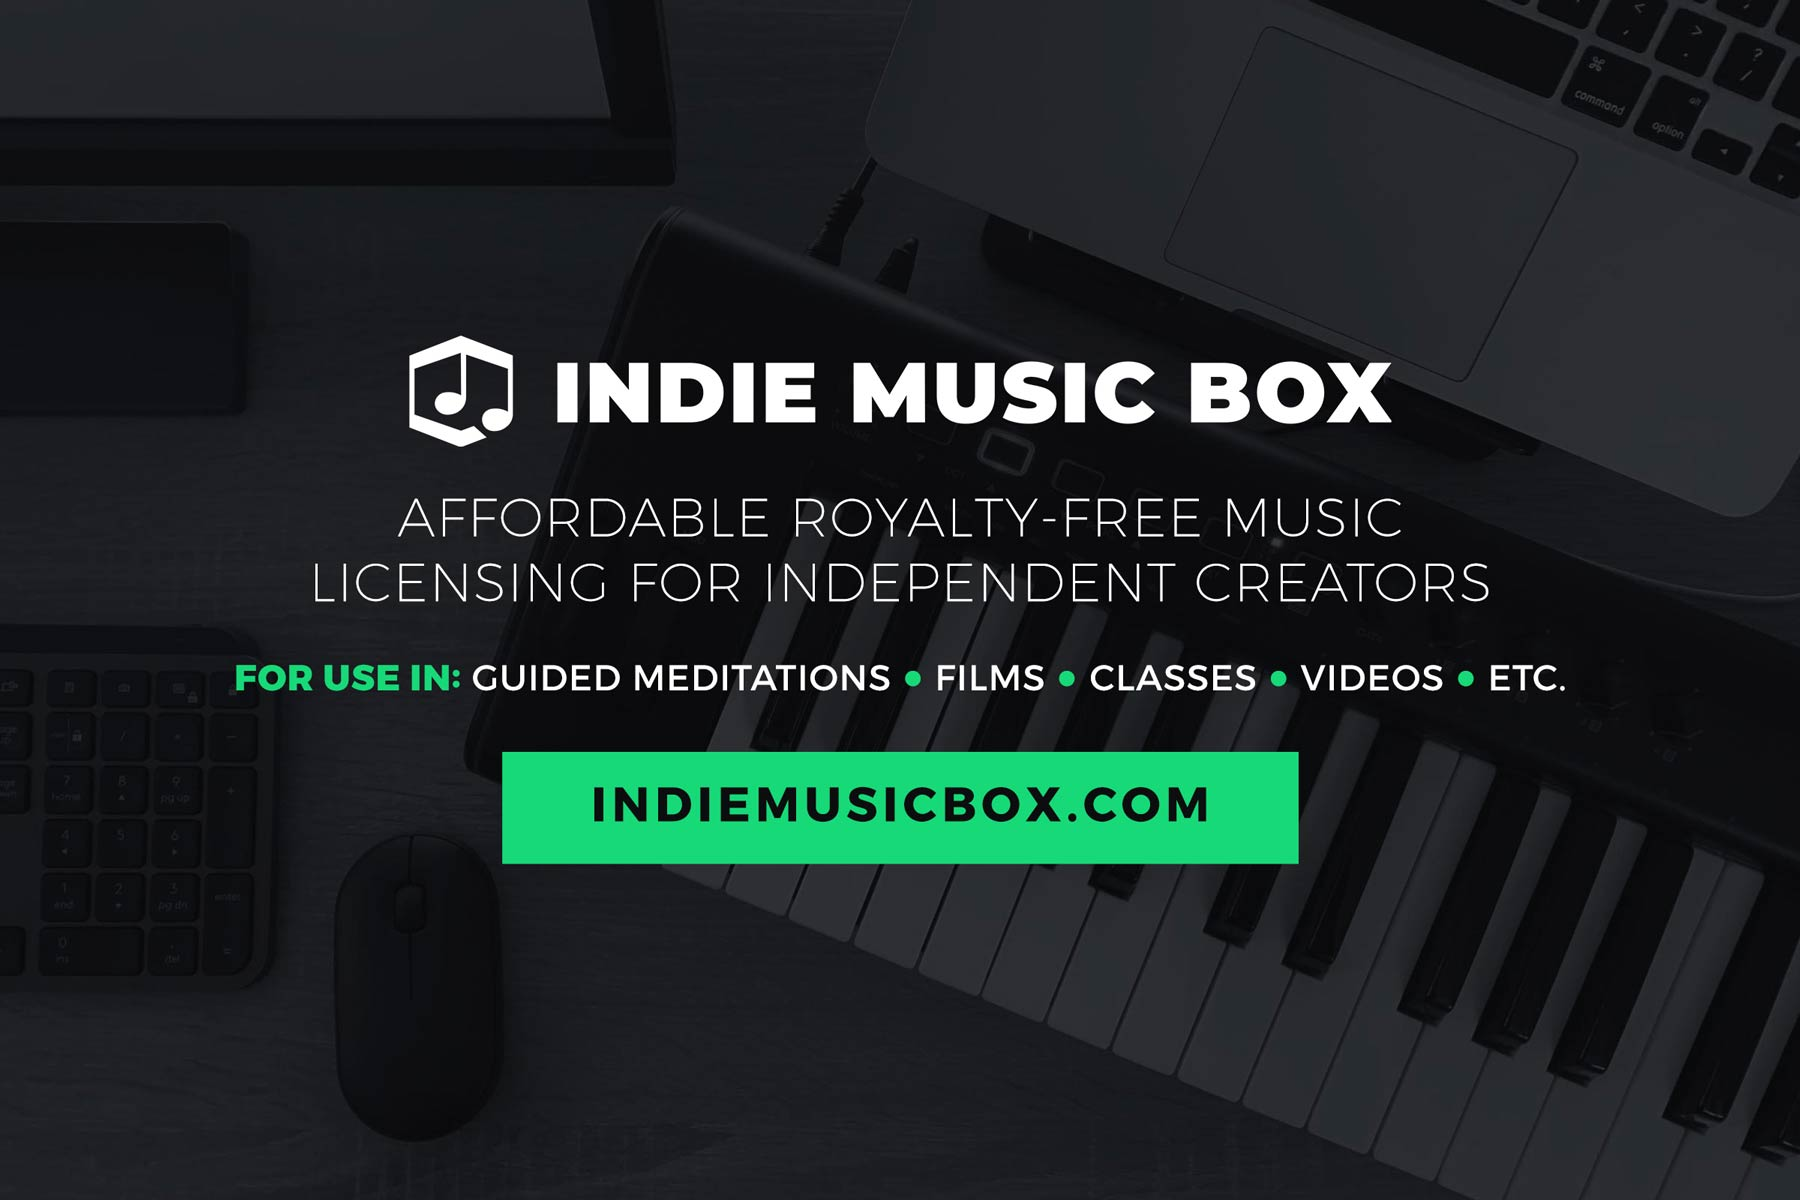 Affordable Royalty-Free Music Licensing for Independent Creators